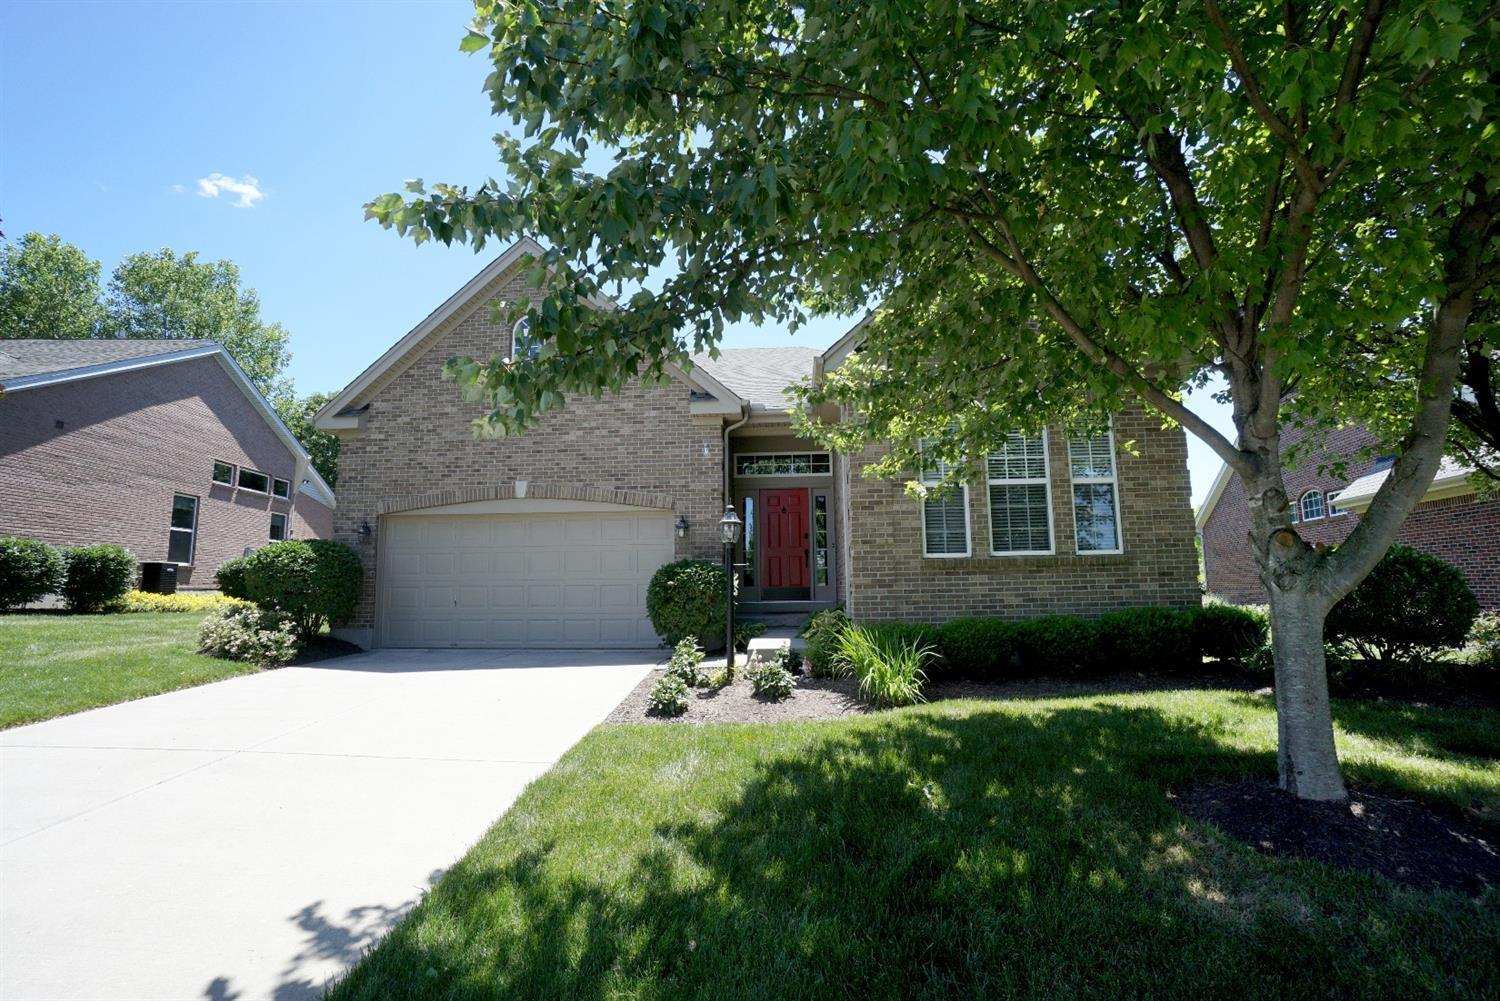 6464 Creekside Wy Fairfield Twp., OH